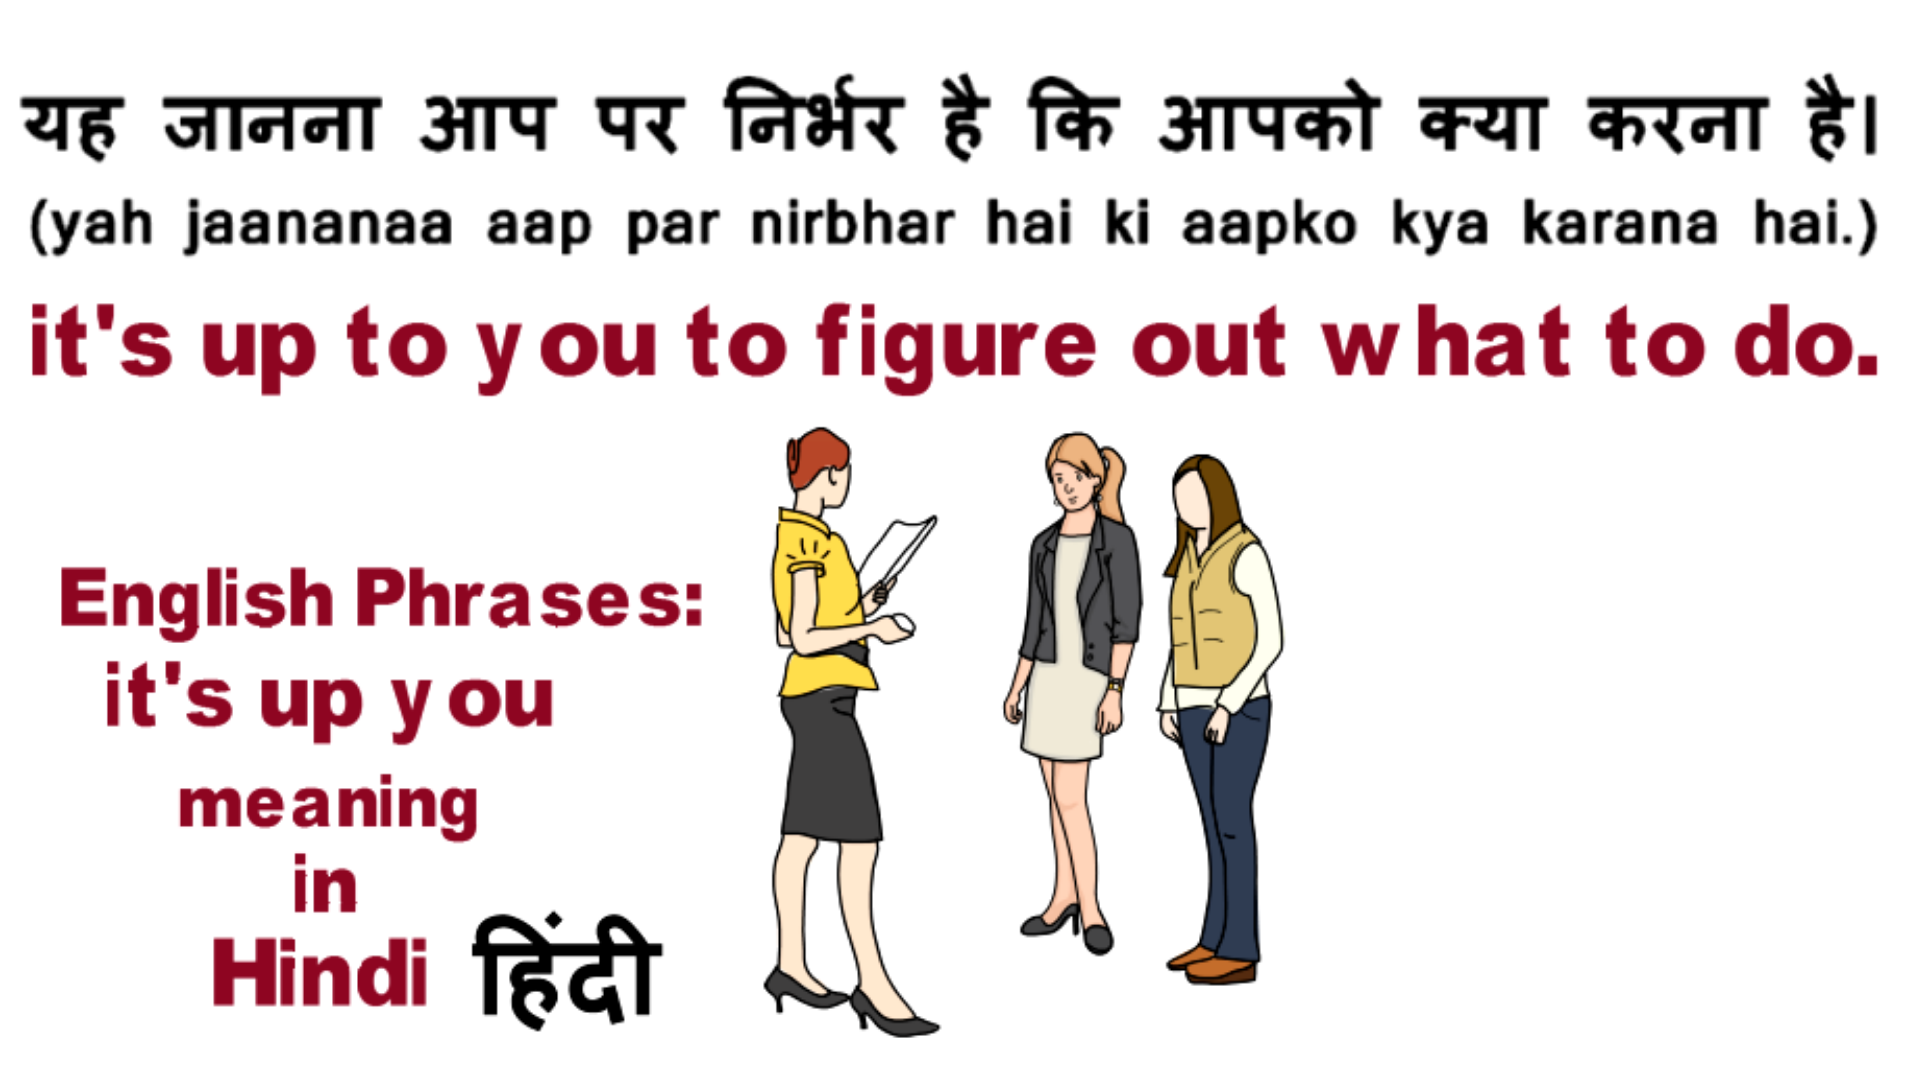 English Phrases It's up to you Meaning in Hindi